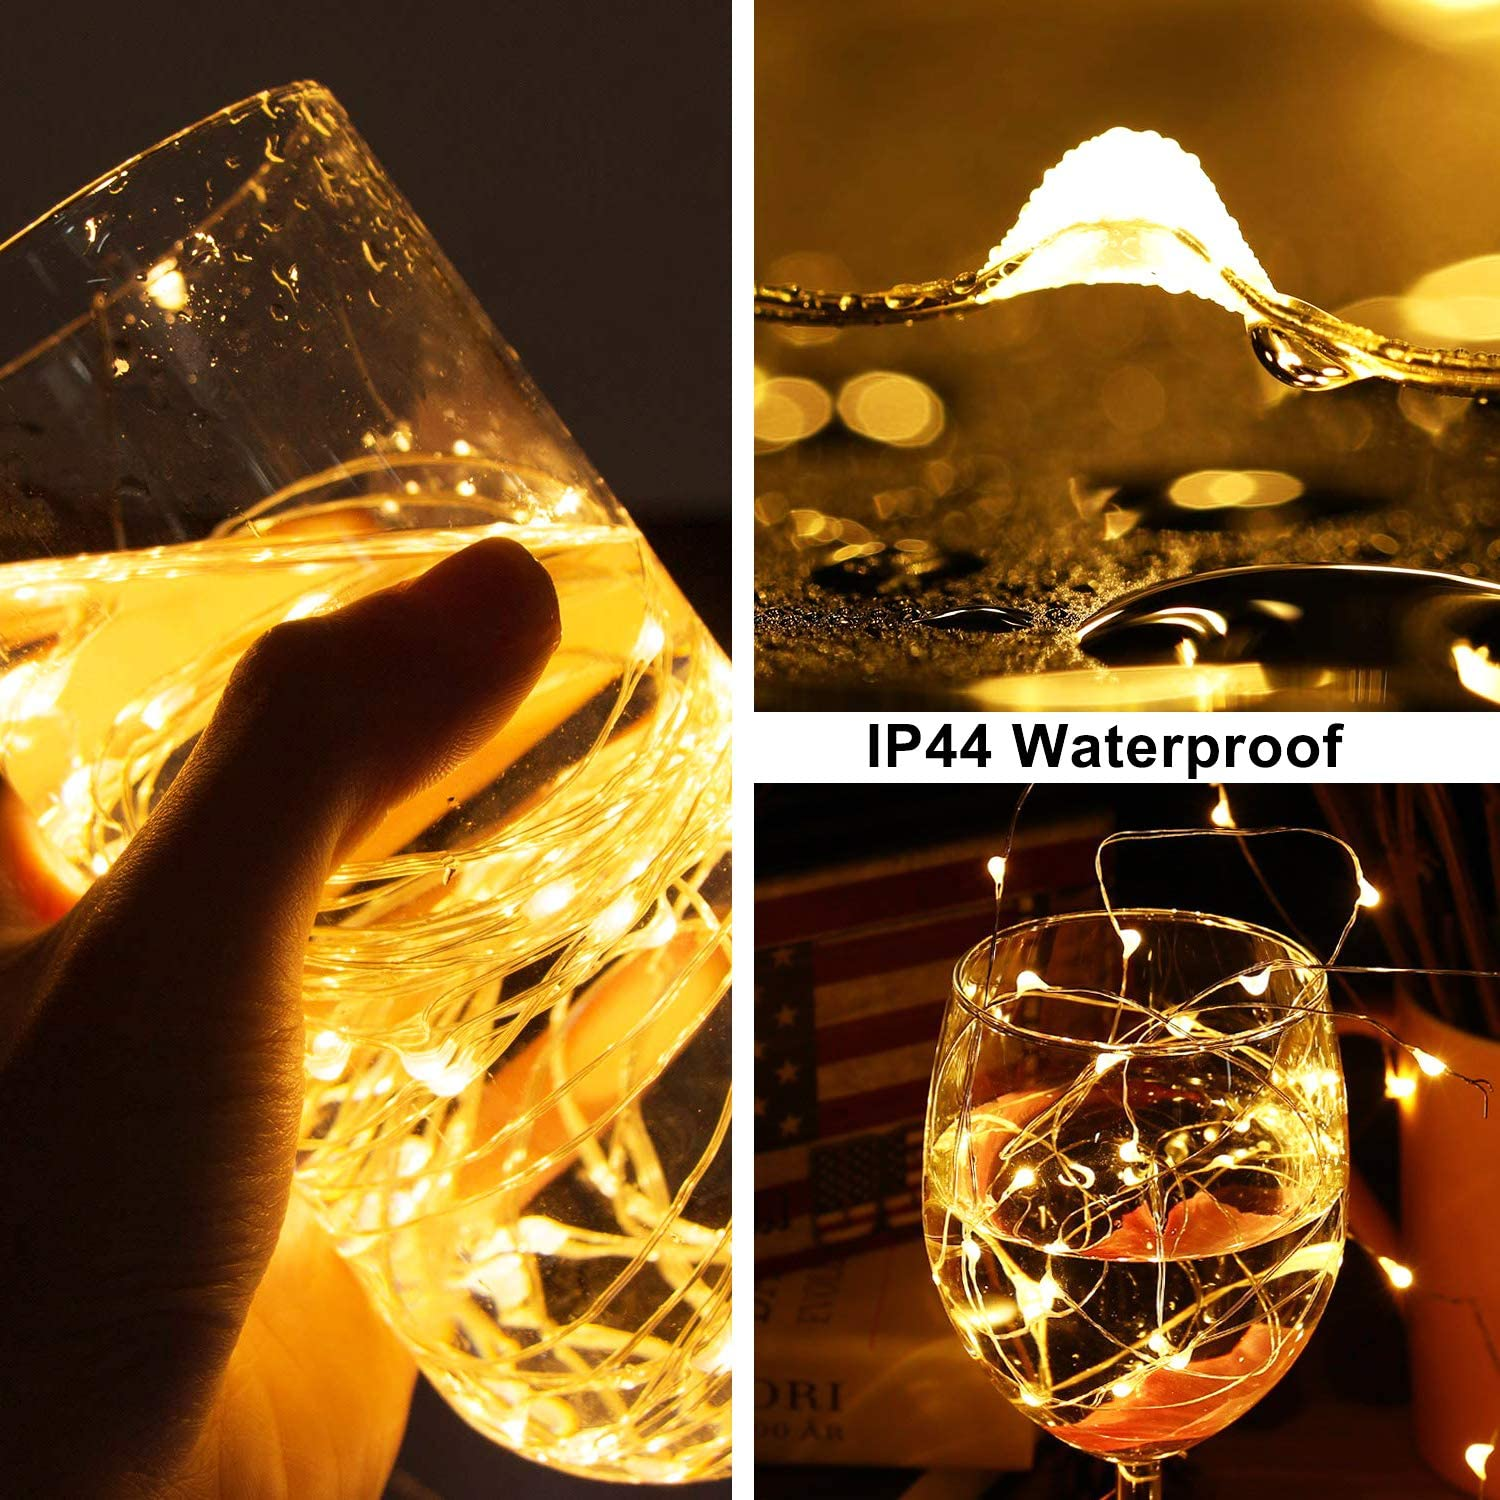 Hd4285e6a08f74741a285aaef23e499baJ - Led Fairy Lights Copper Wire String 1/2/5/10M Holiday Outdoor Lamp Garland Luces For Christmas Tree Wedding Party Decoration